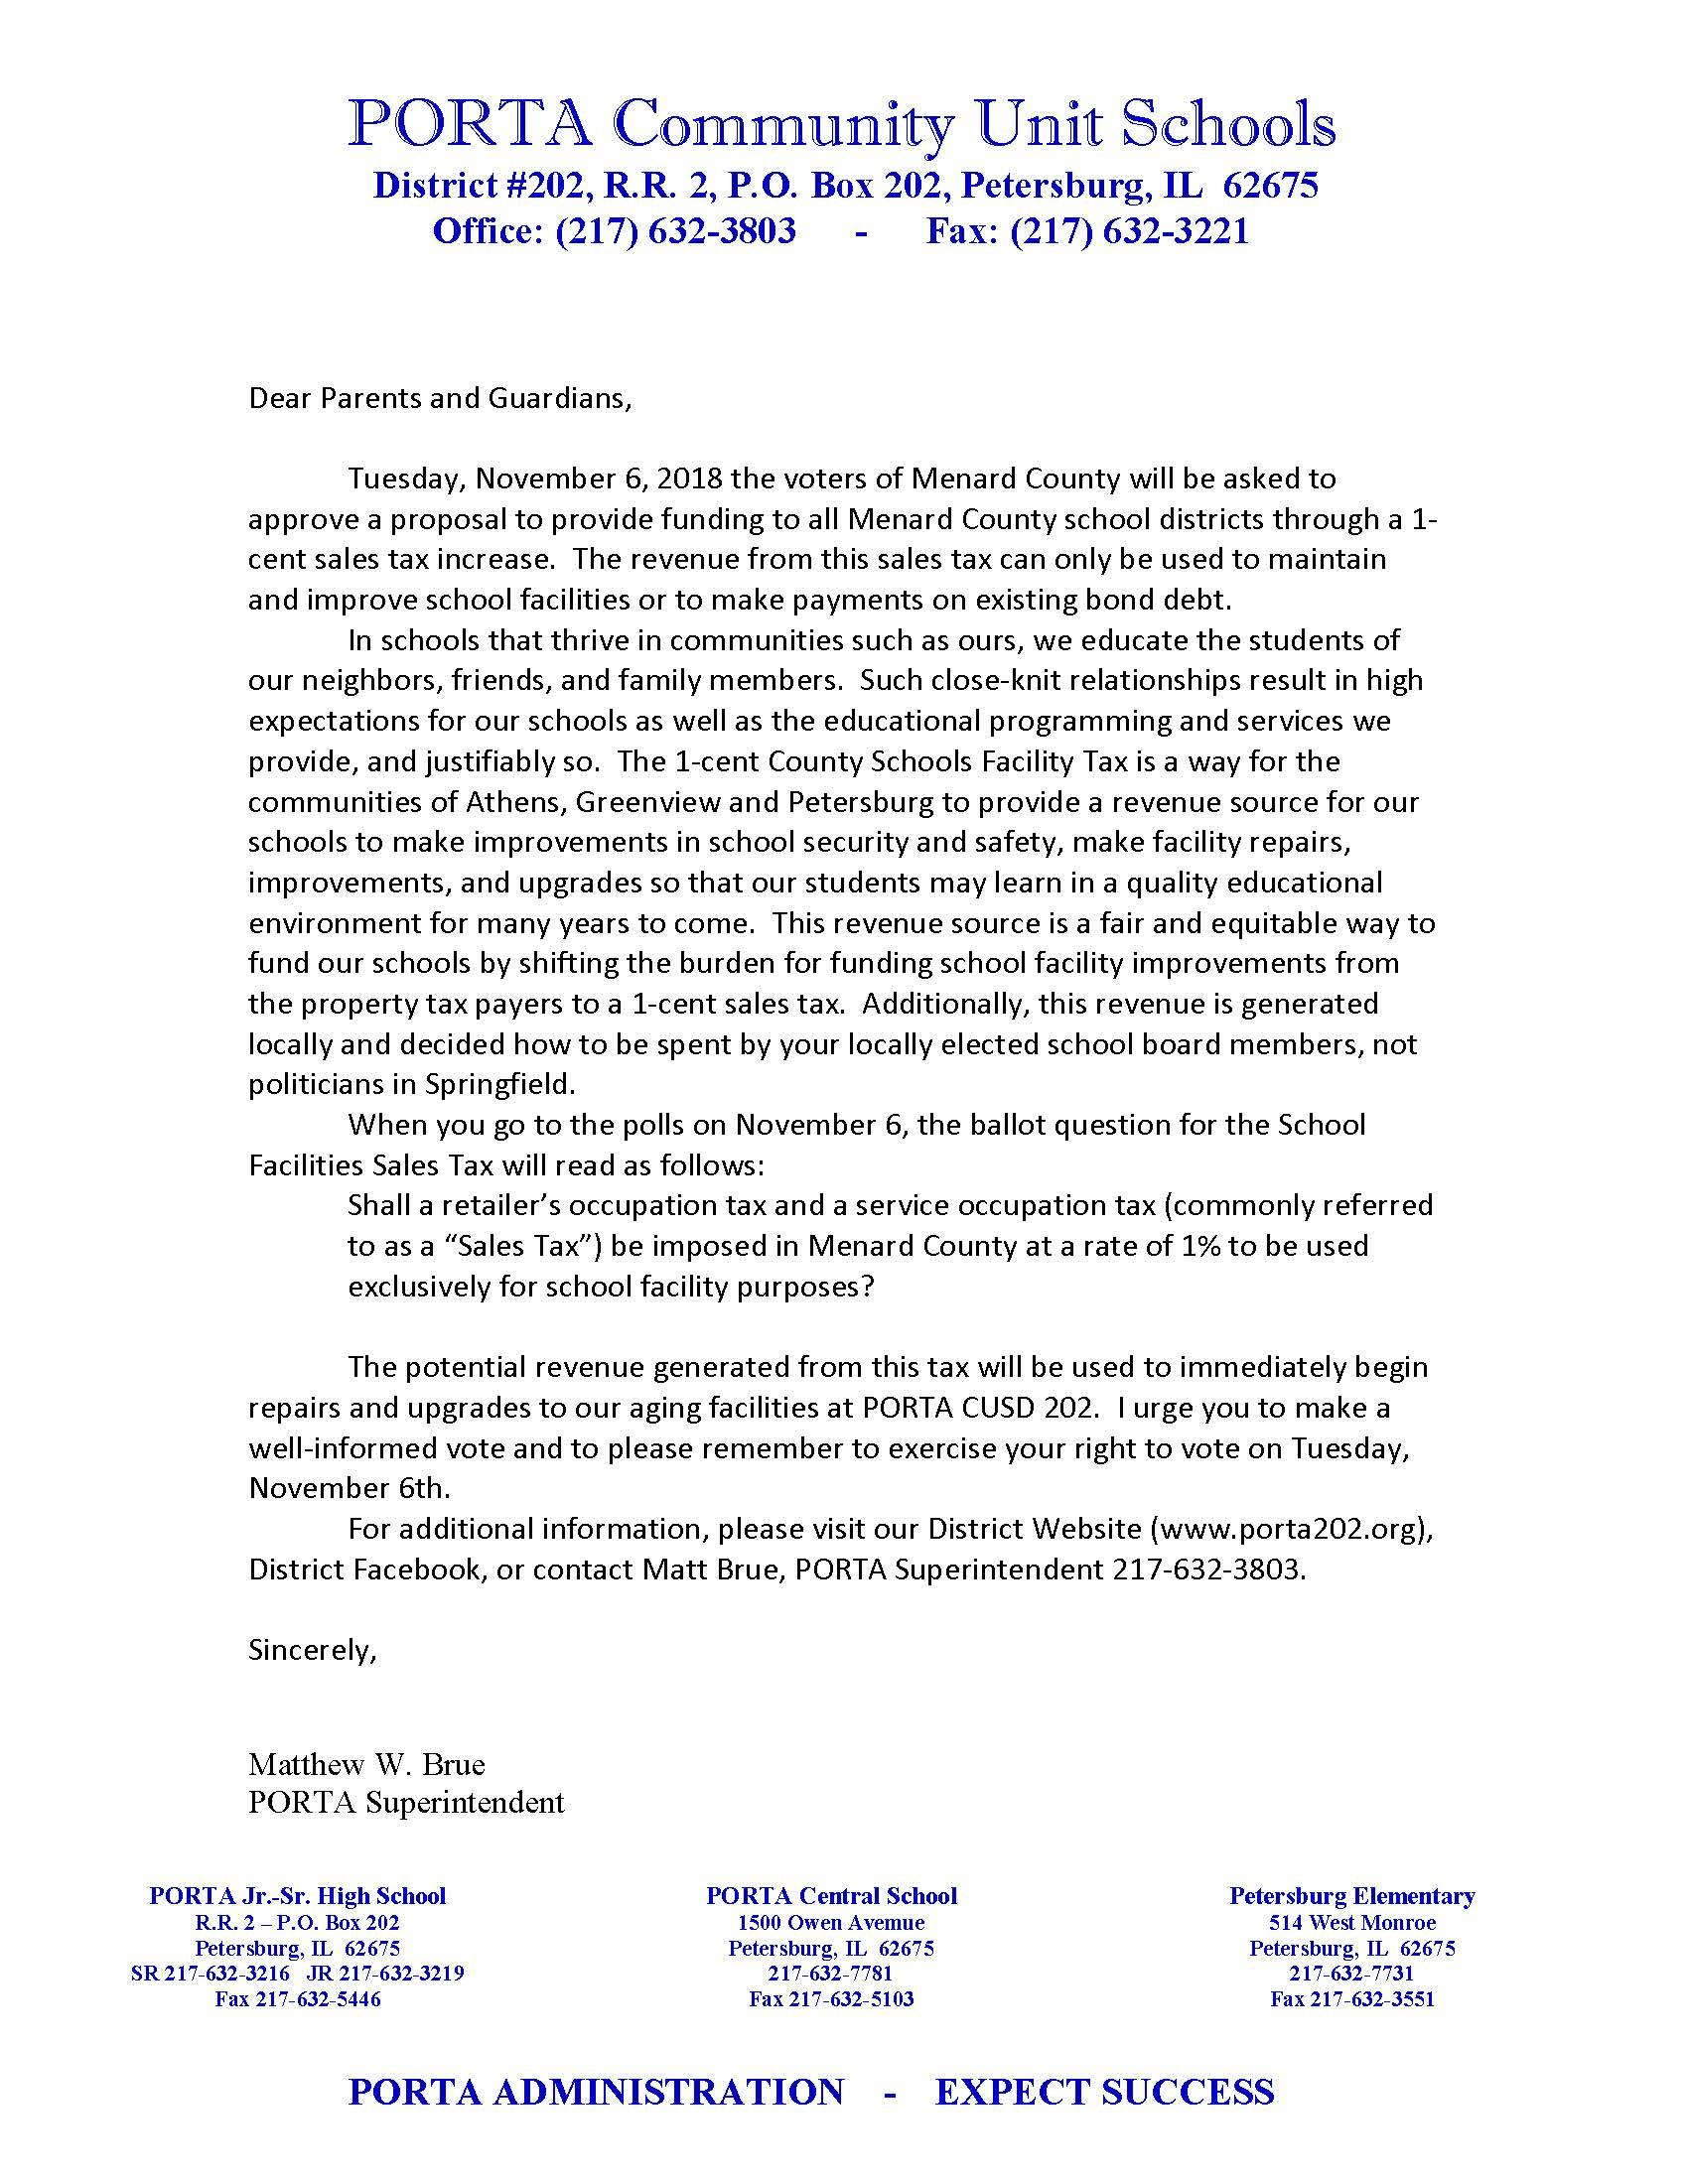 Superintendents letter on 1% Sales tax